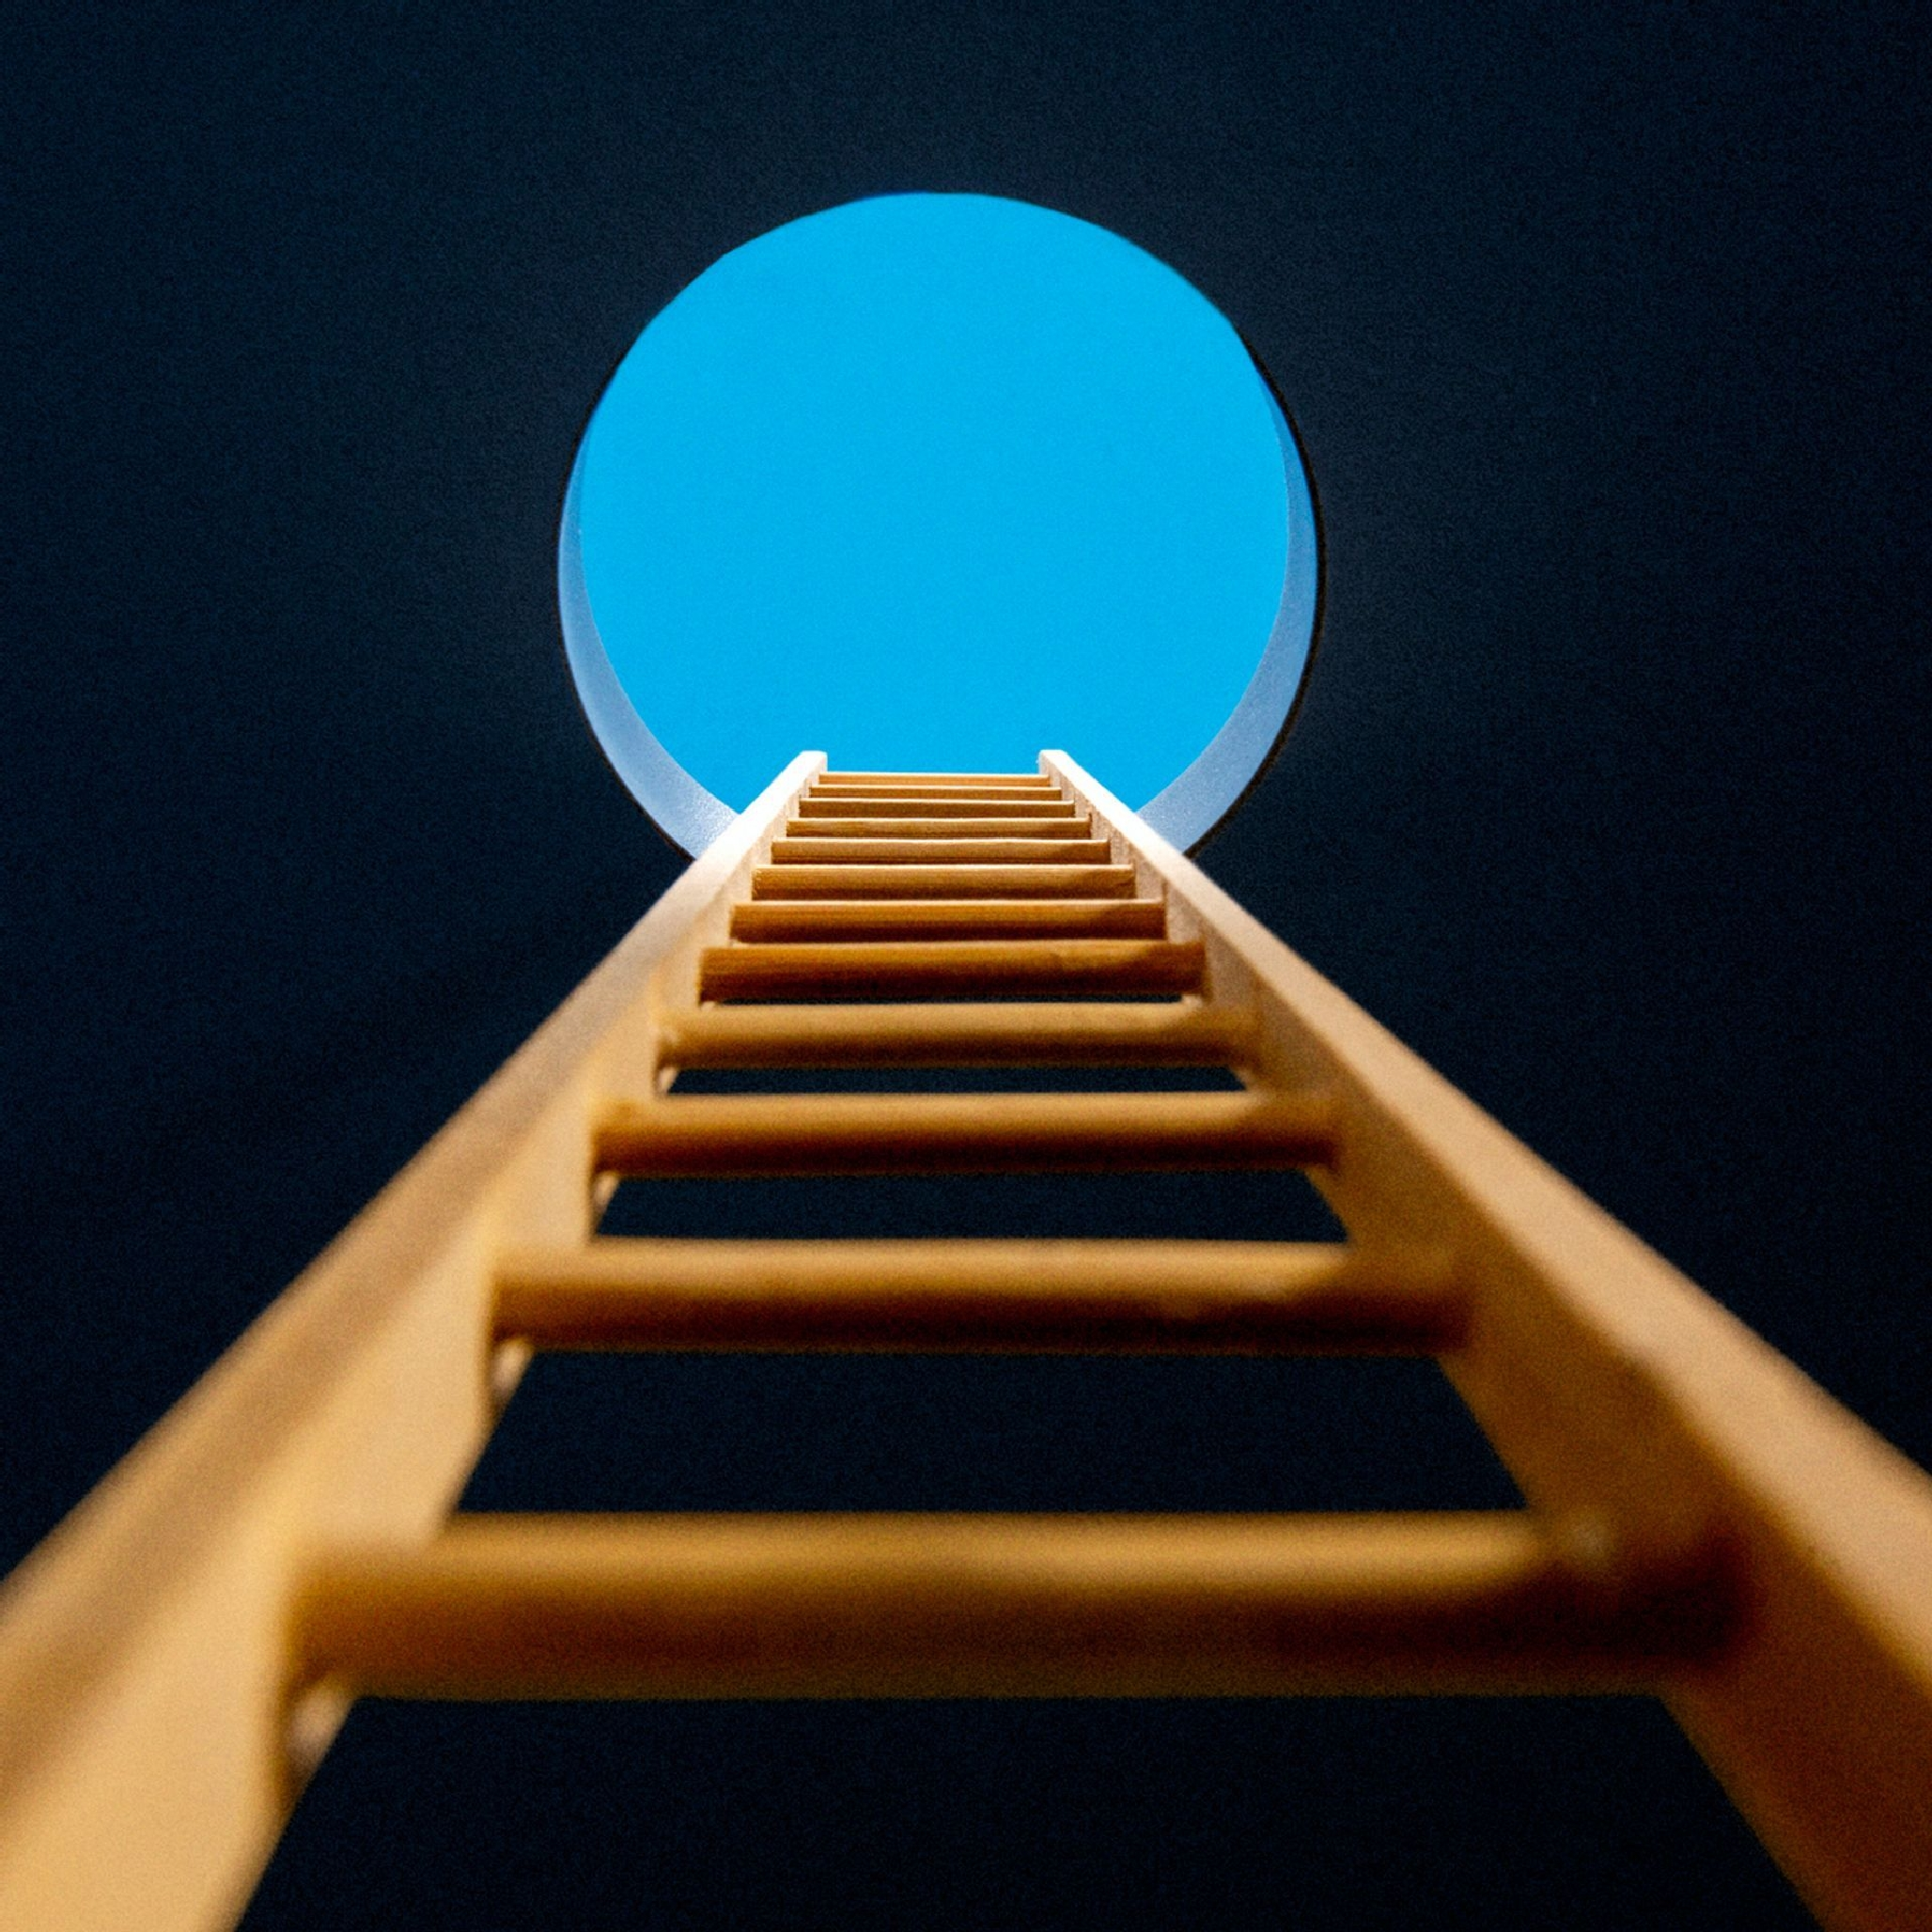 A ladder leading to an open sky